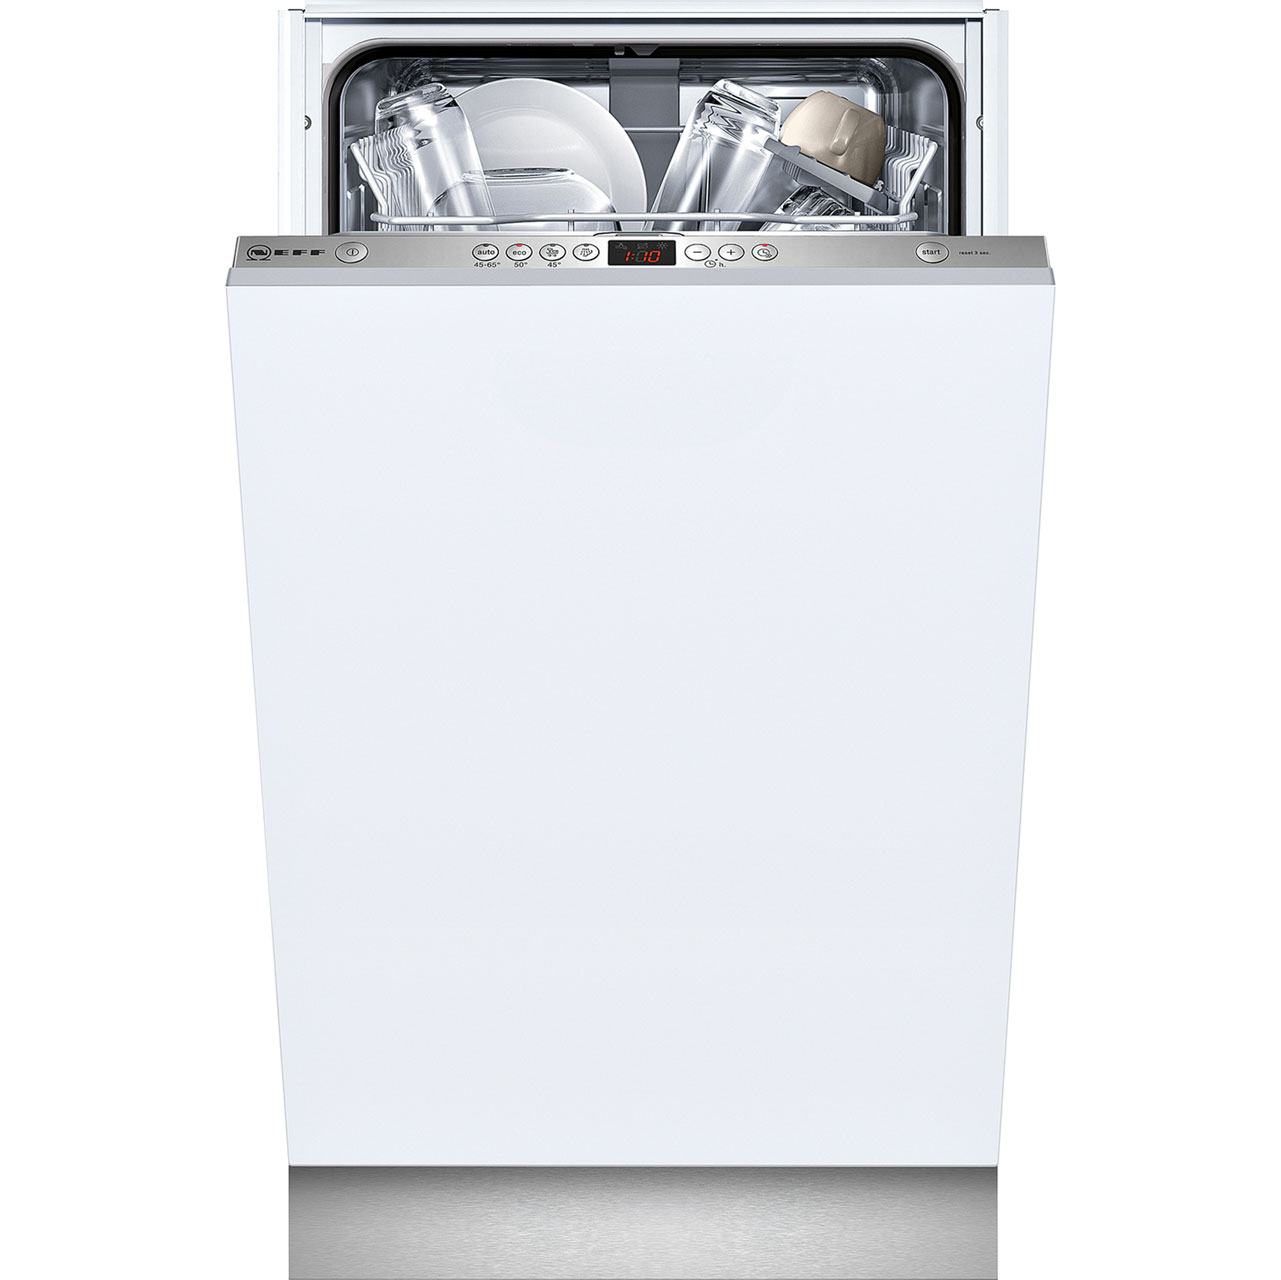 Neff S58T40X0GB Fully Integrated Slimline Dishwasher - Stainless Steel